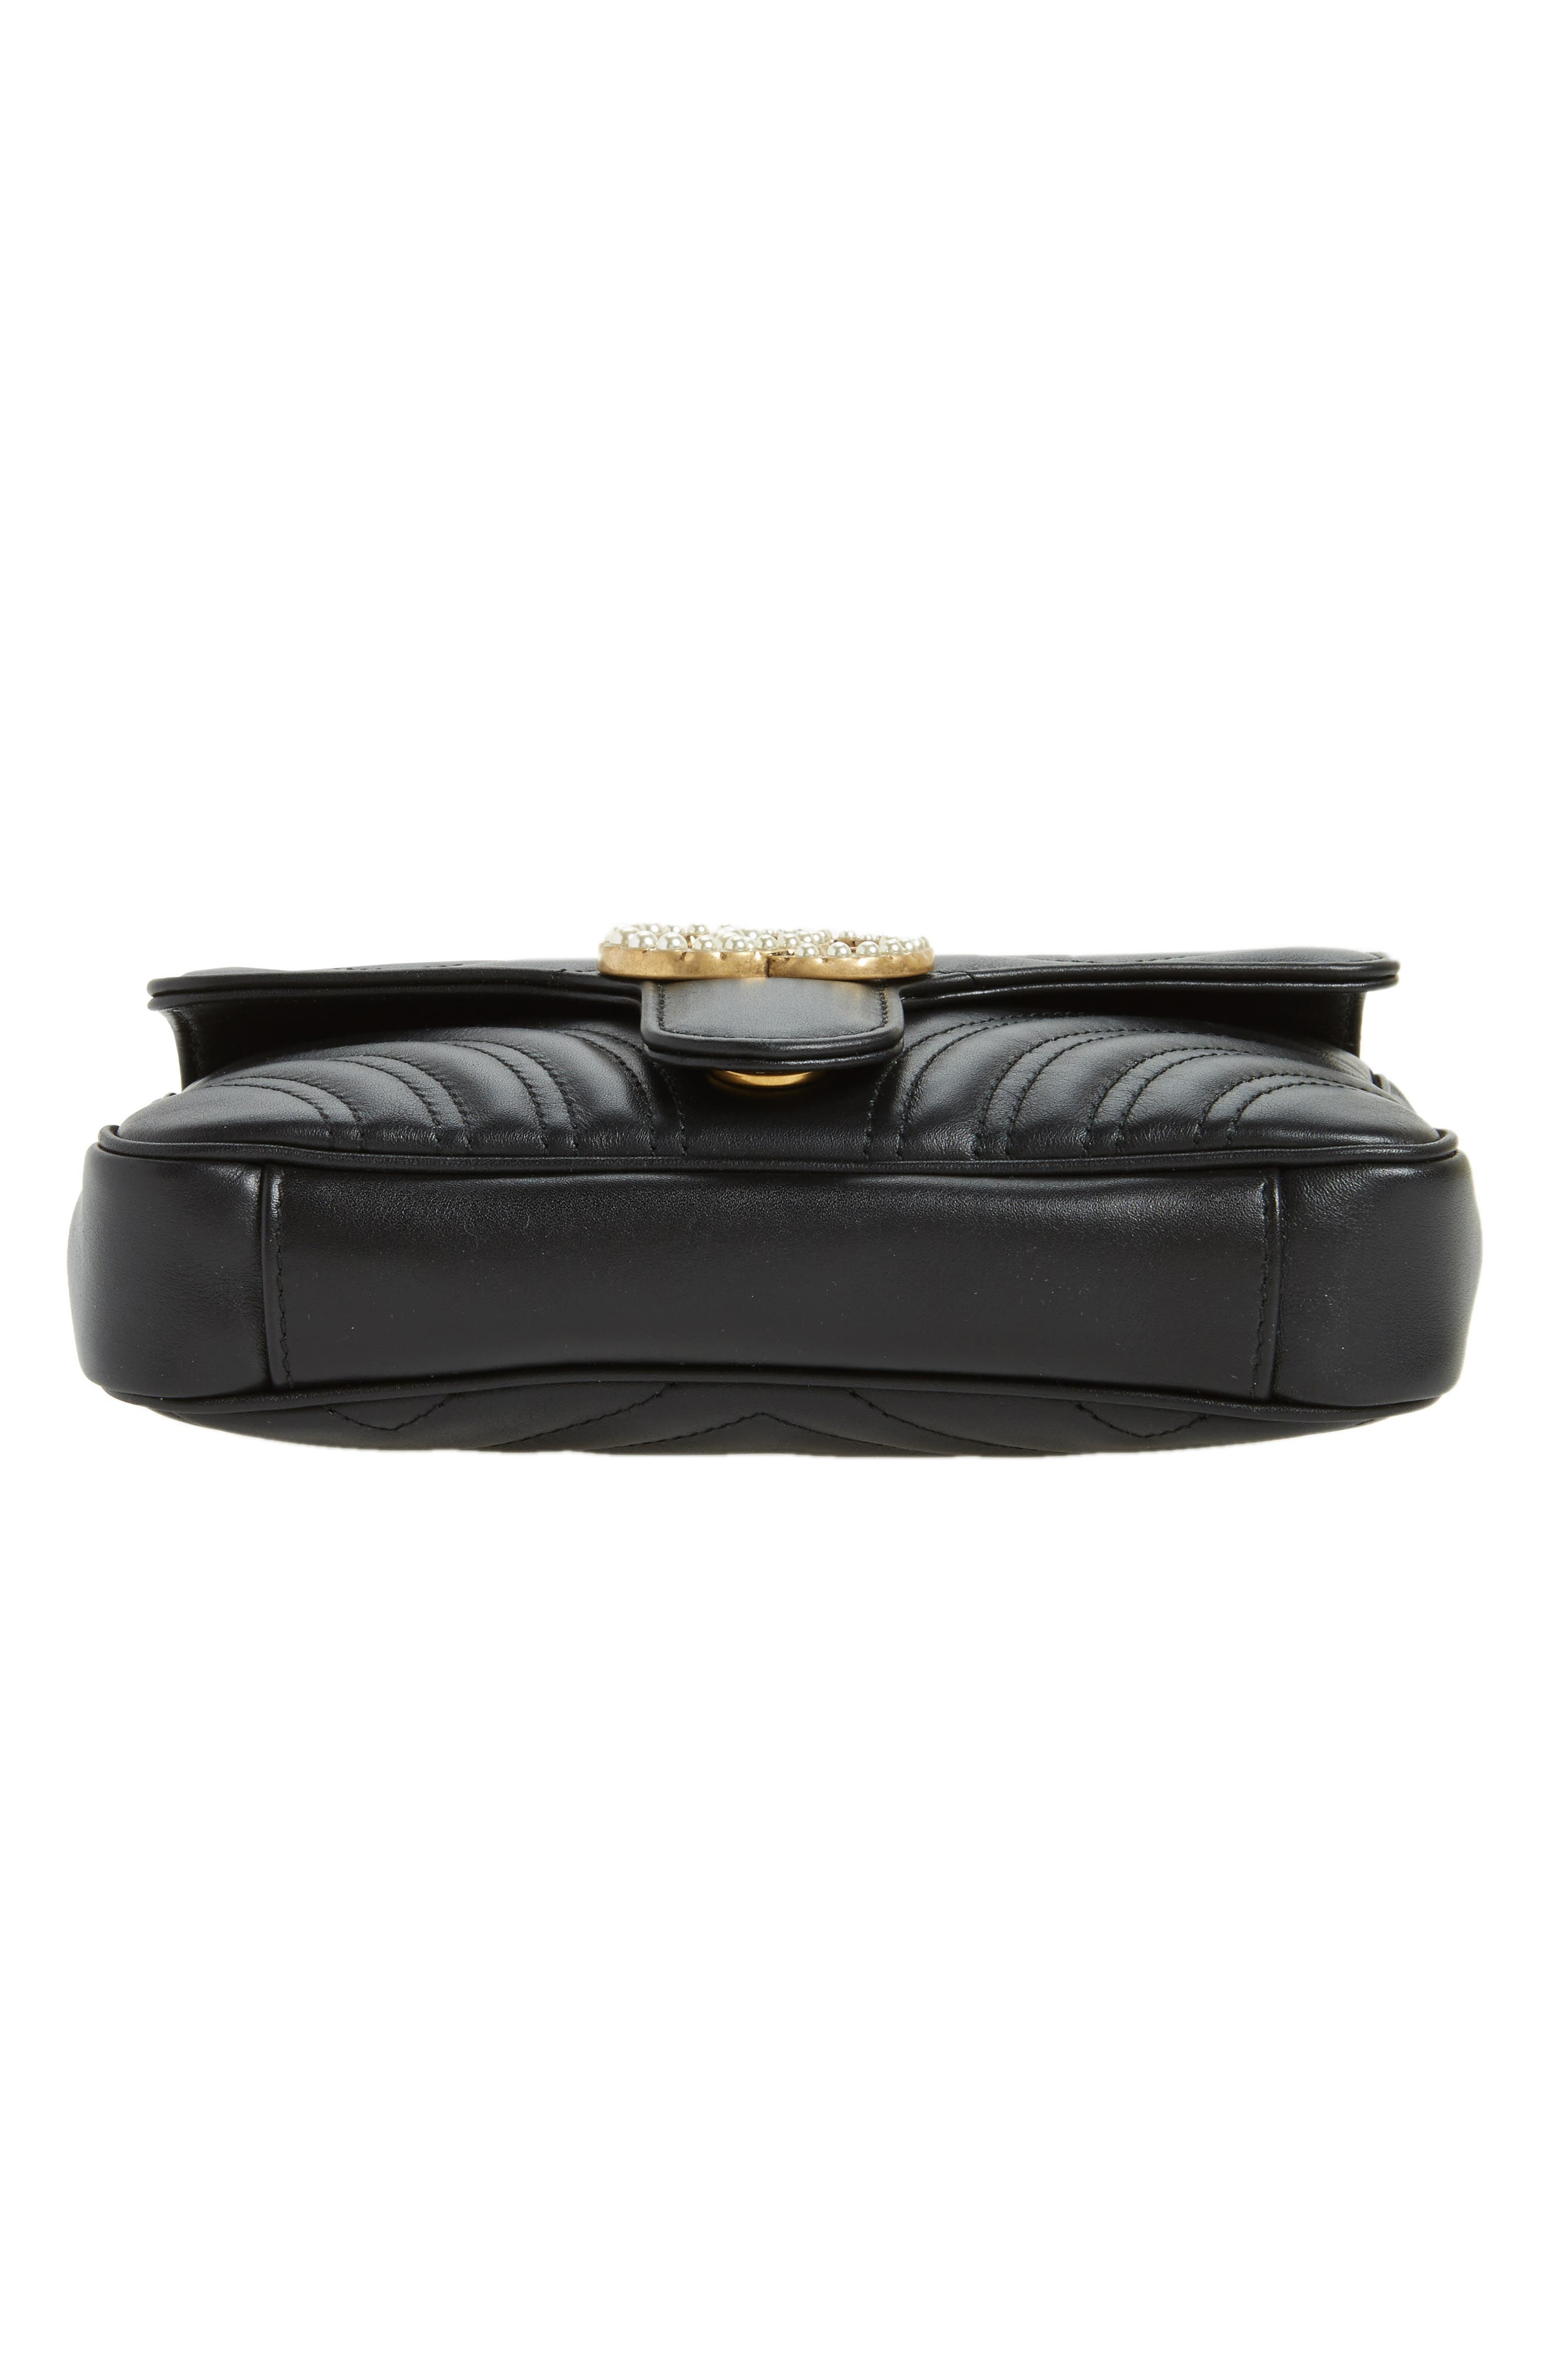 Marmont 2.0 Imitation Pearl Logo Quilted Leather Belt Bag,                             Alternate thumbnail 6, color,                             Nero Black